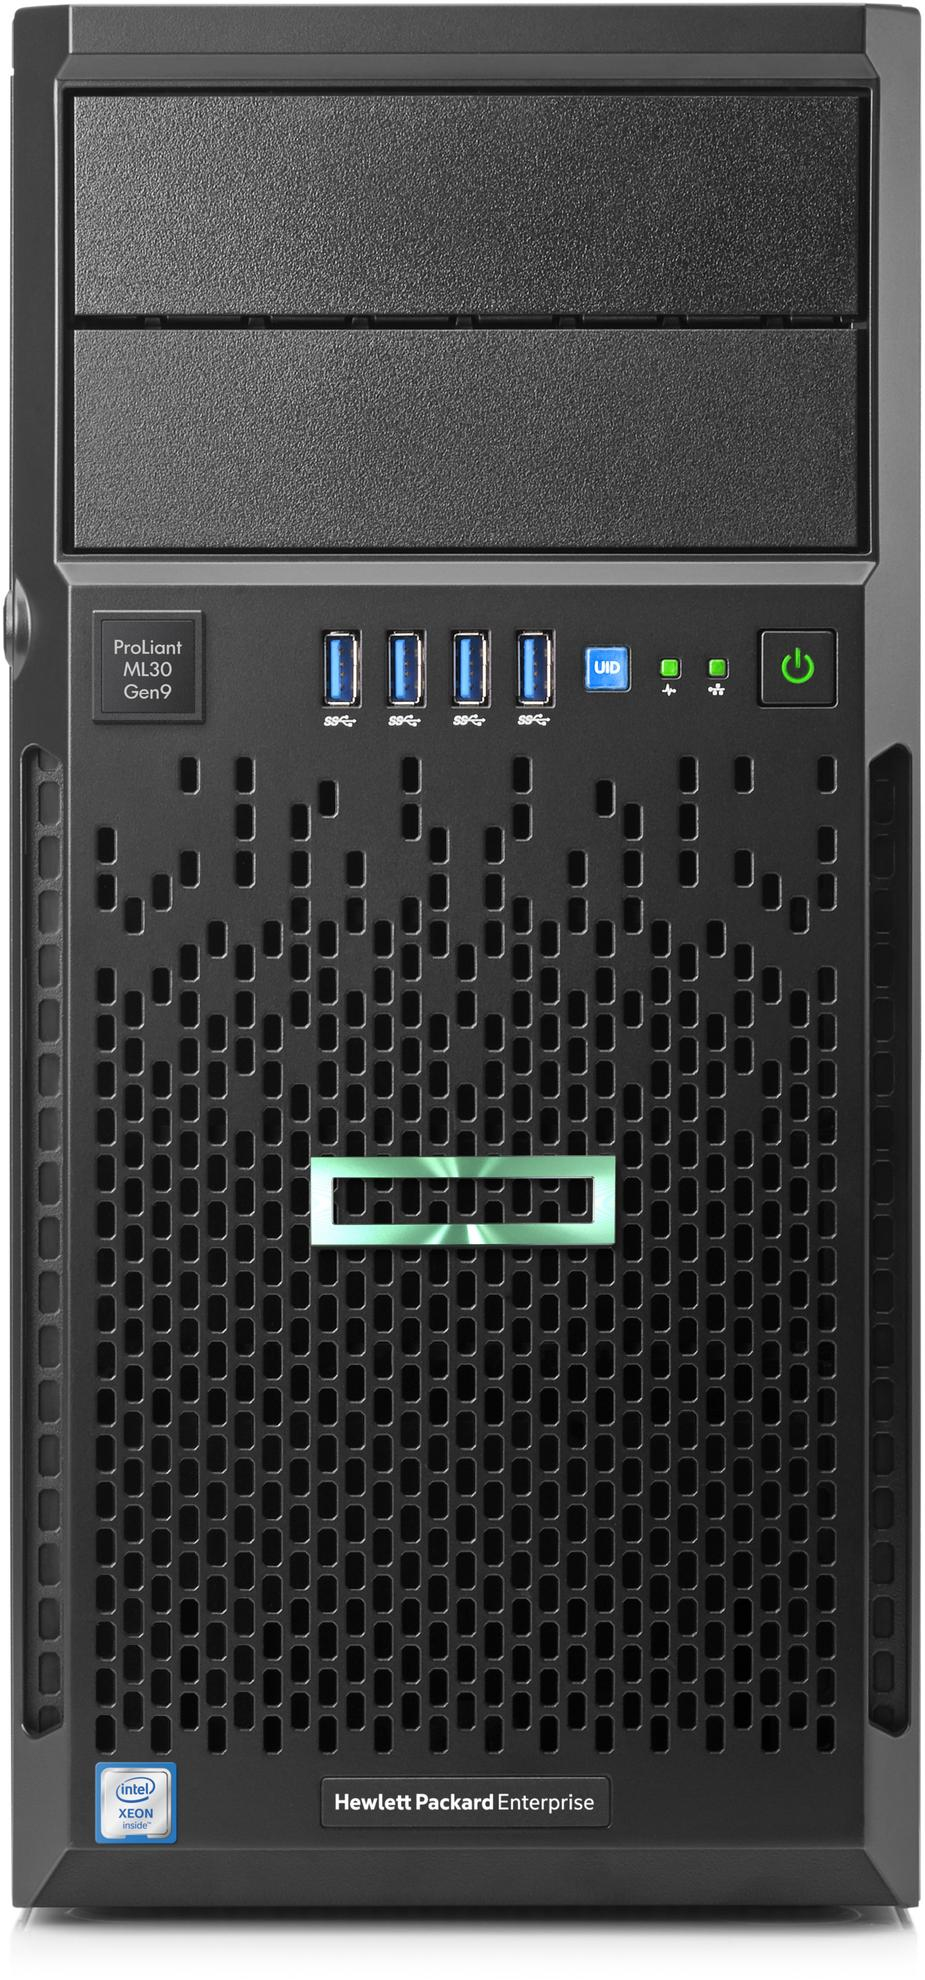 HPE 872658-031 PROLIANT ML30 GEN9 3GHZ E3-1220 V6 350W TOWER (4U) SERVER